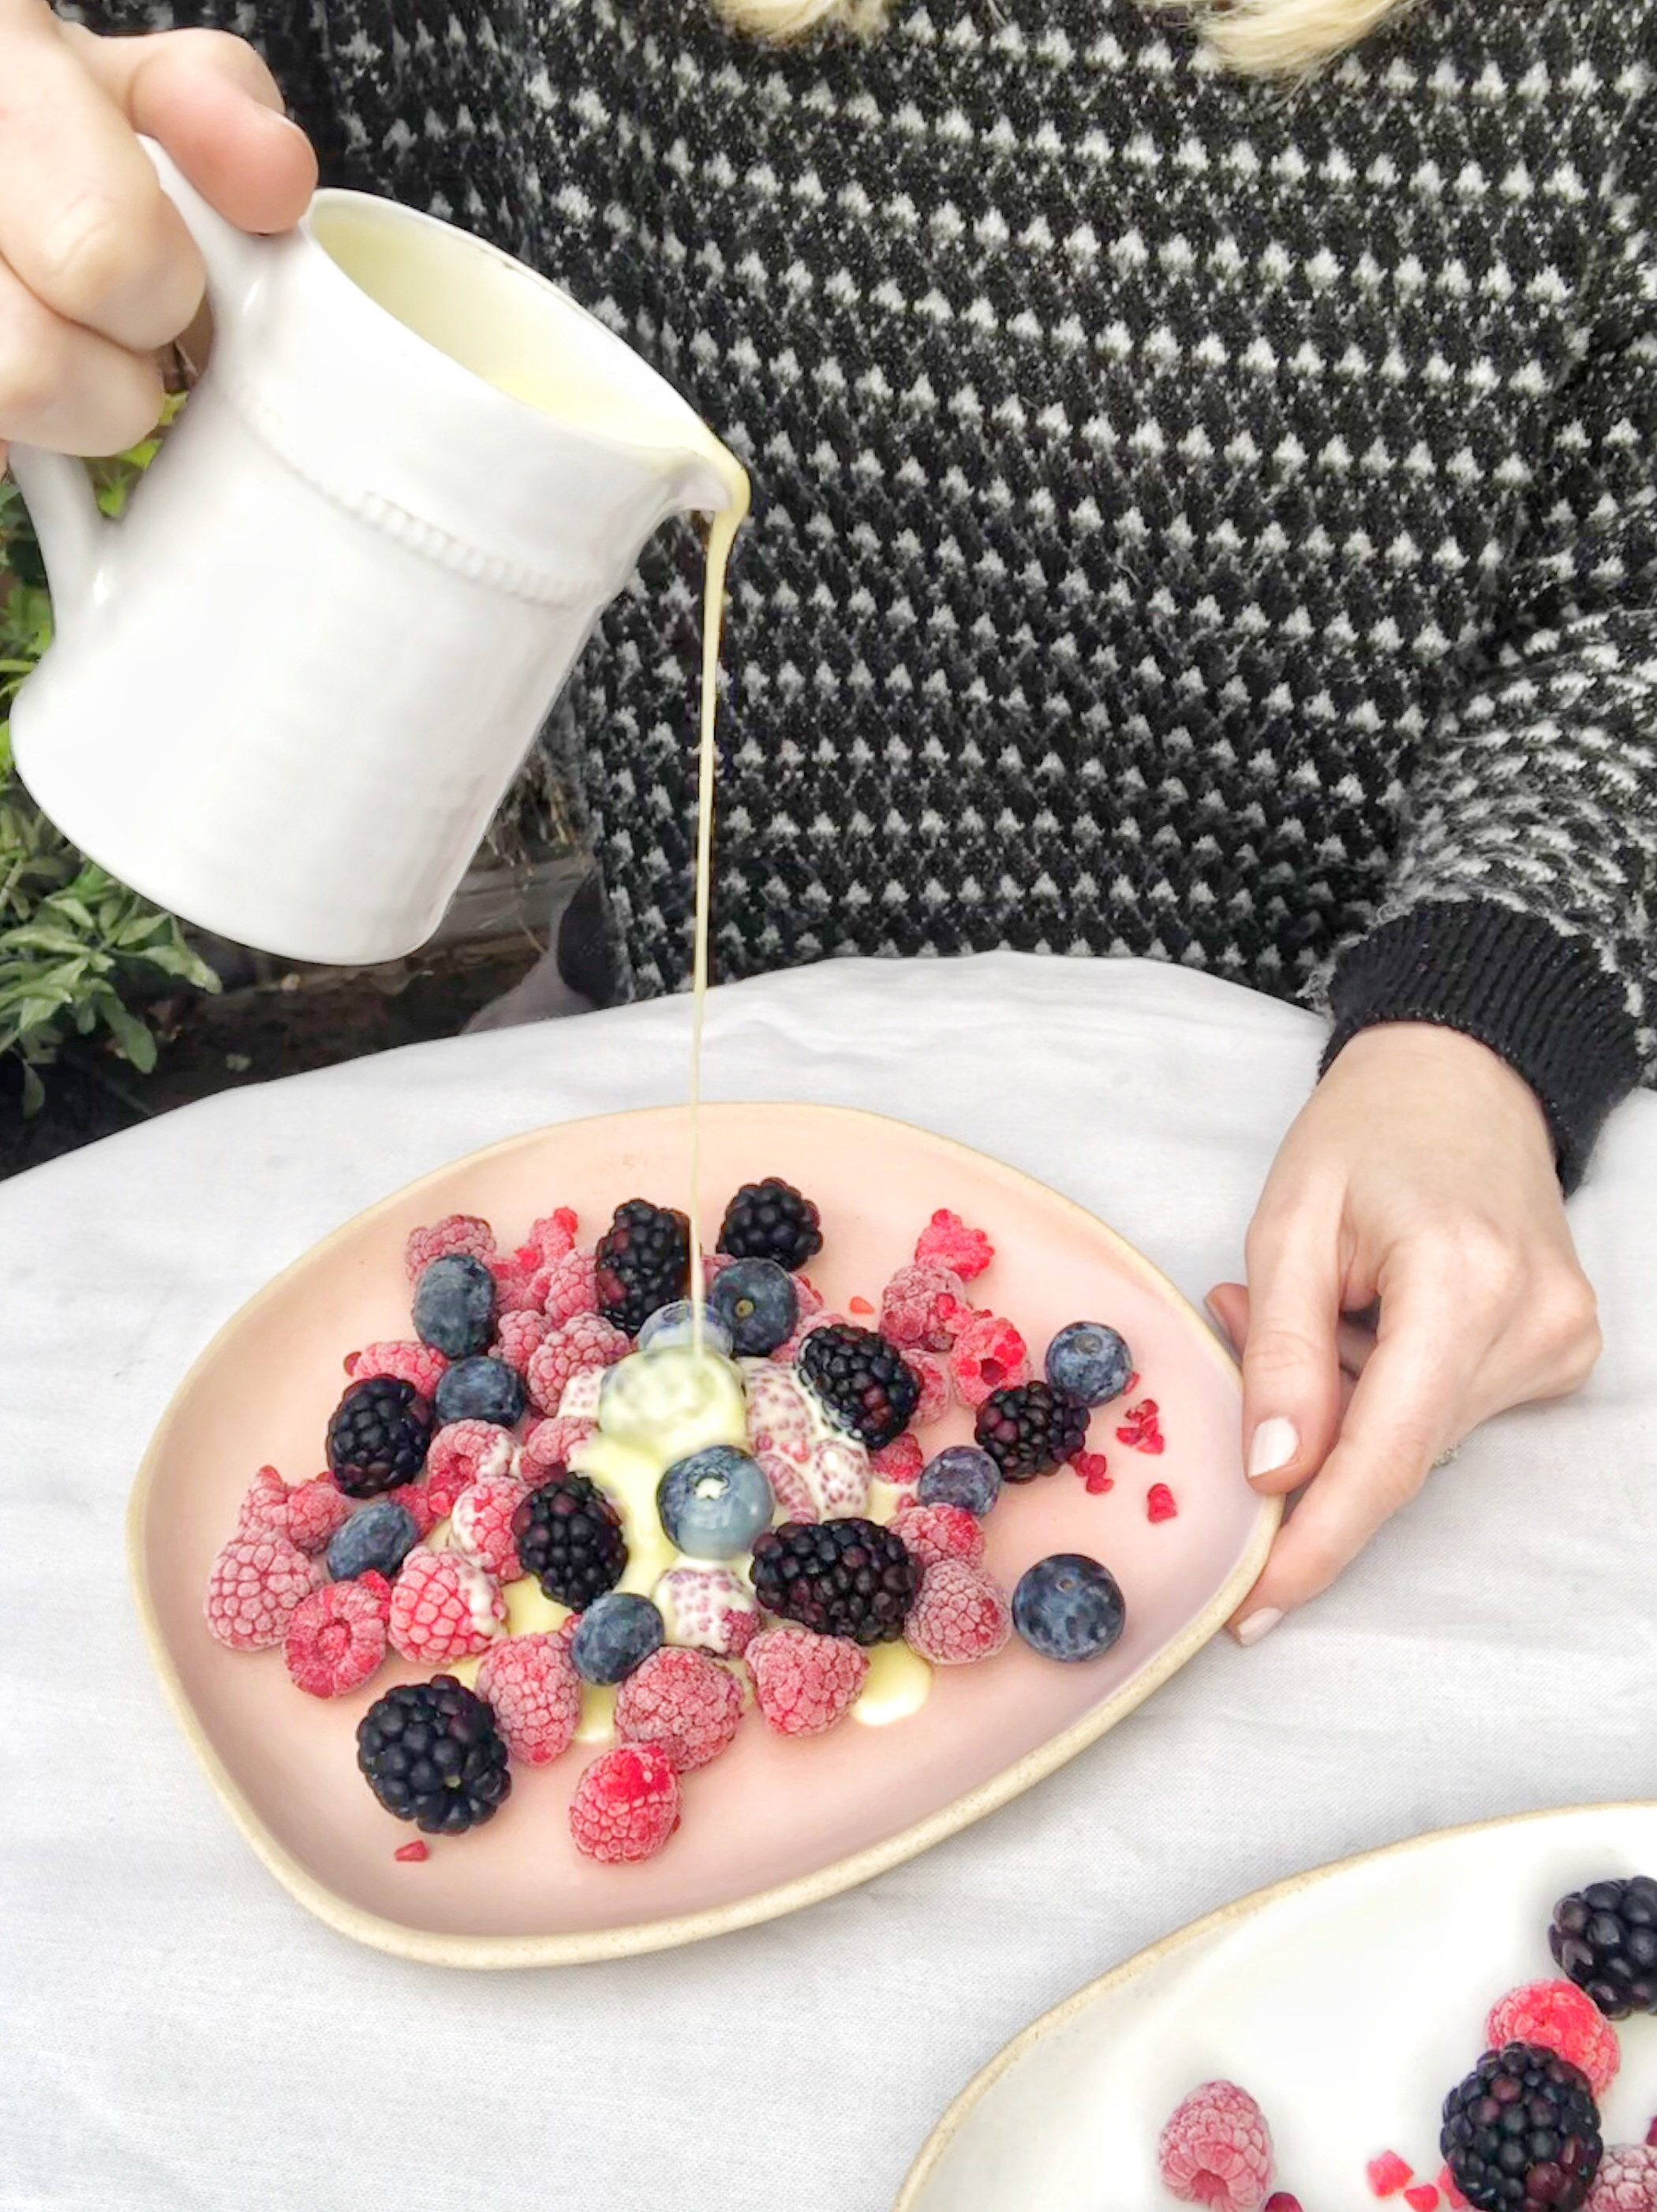 FROZEN BERRIES WITH HOT WHITE CHOCOLATE SAUCE